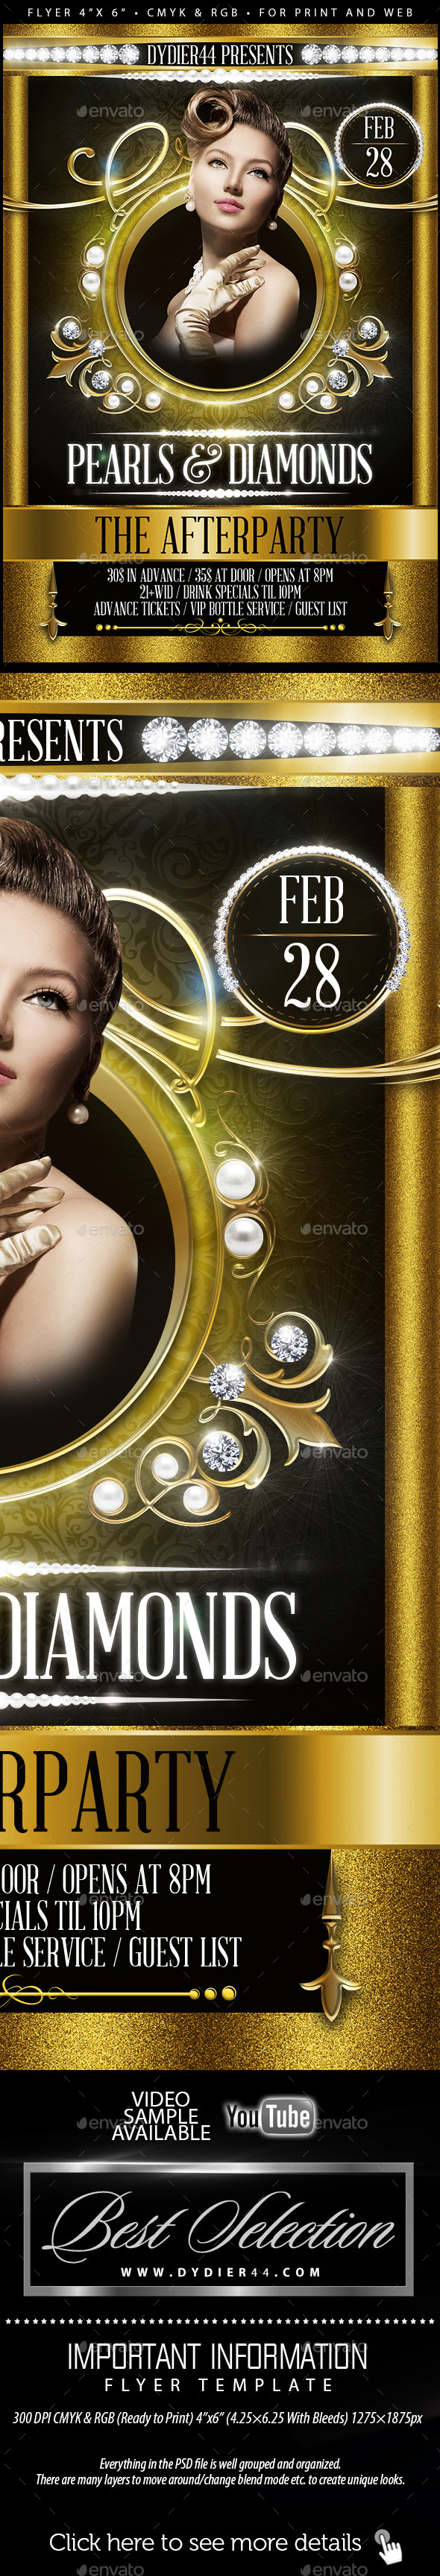 Pearls & Diamonds Flyer Template 4x6